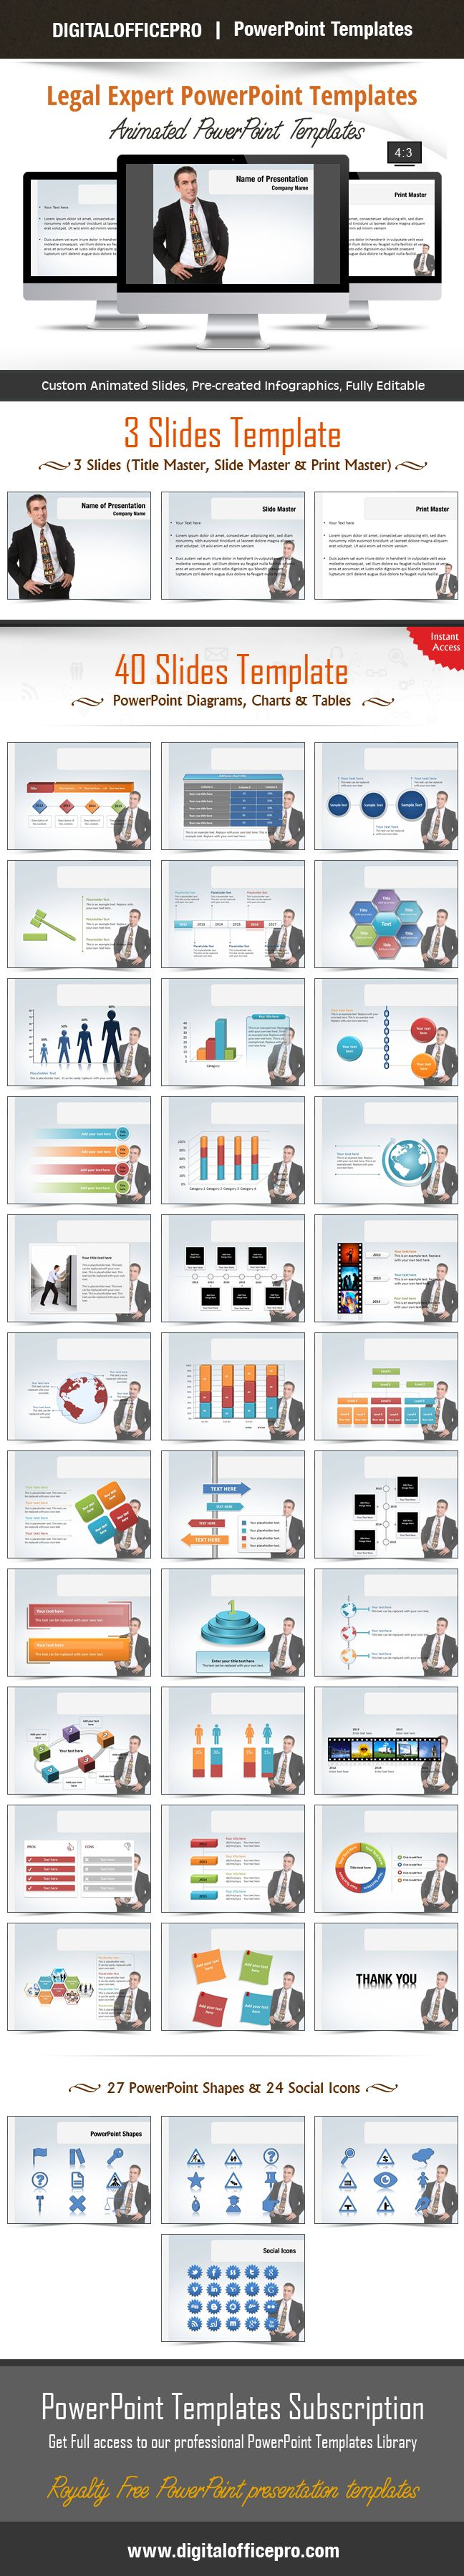 43 best diagrams powerpoint templates images on pinterest 43 best diagrams powerpoint templates images on pinterest business presentation circle diagram and role models toneelgroepblik Gallery